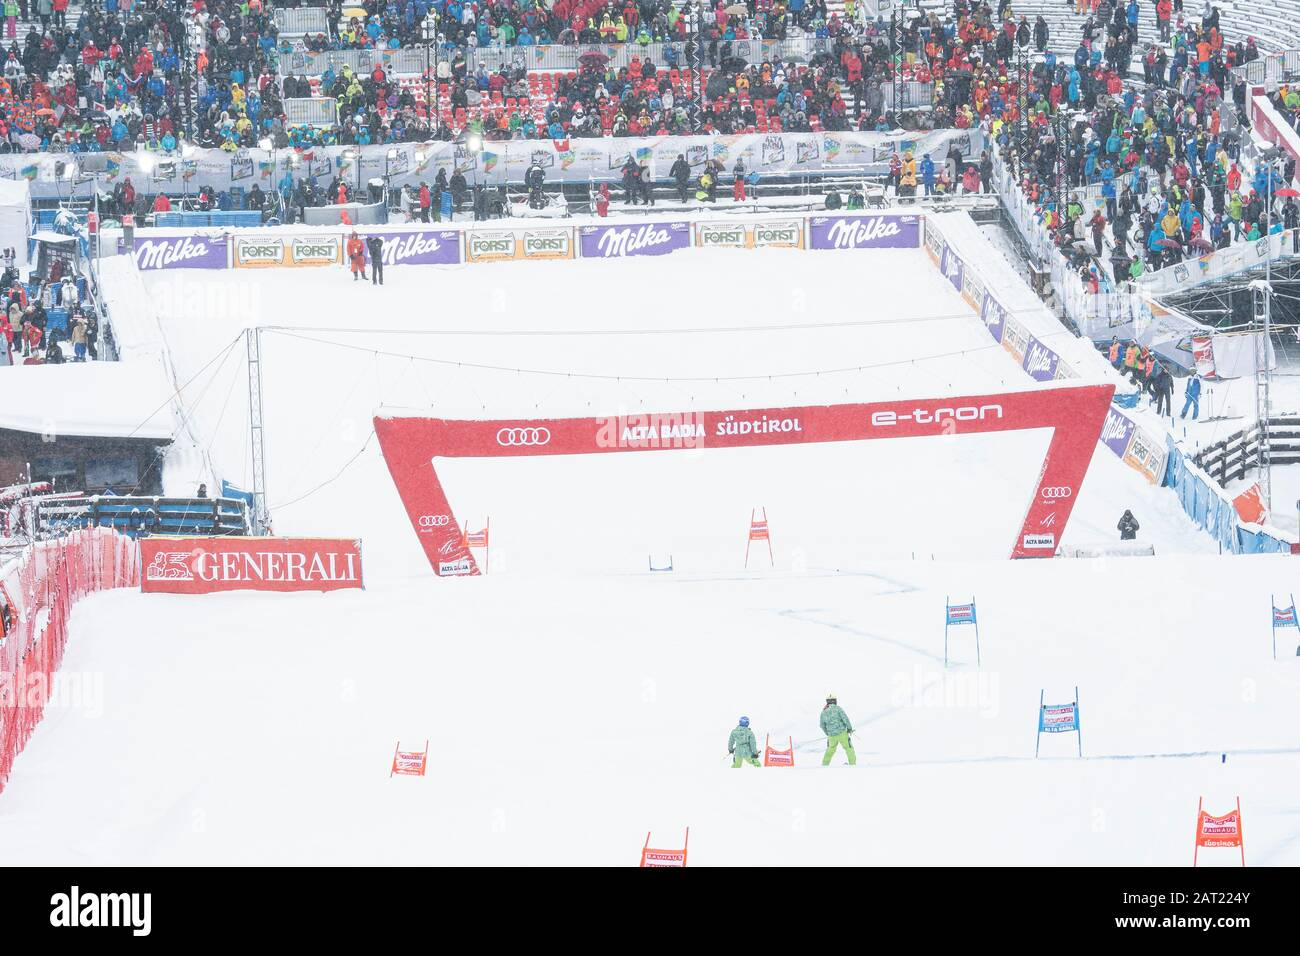 Alta Badia, Italy 22 December 2019: A general view during the Men's World cup Giant Slalom Race on the Gran Risa Course in the dolomite mountain range Stock Photo